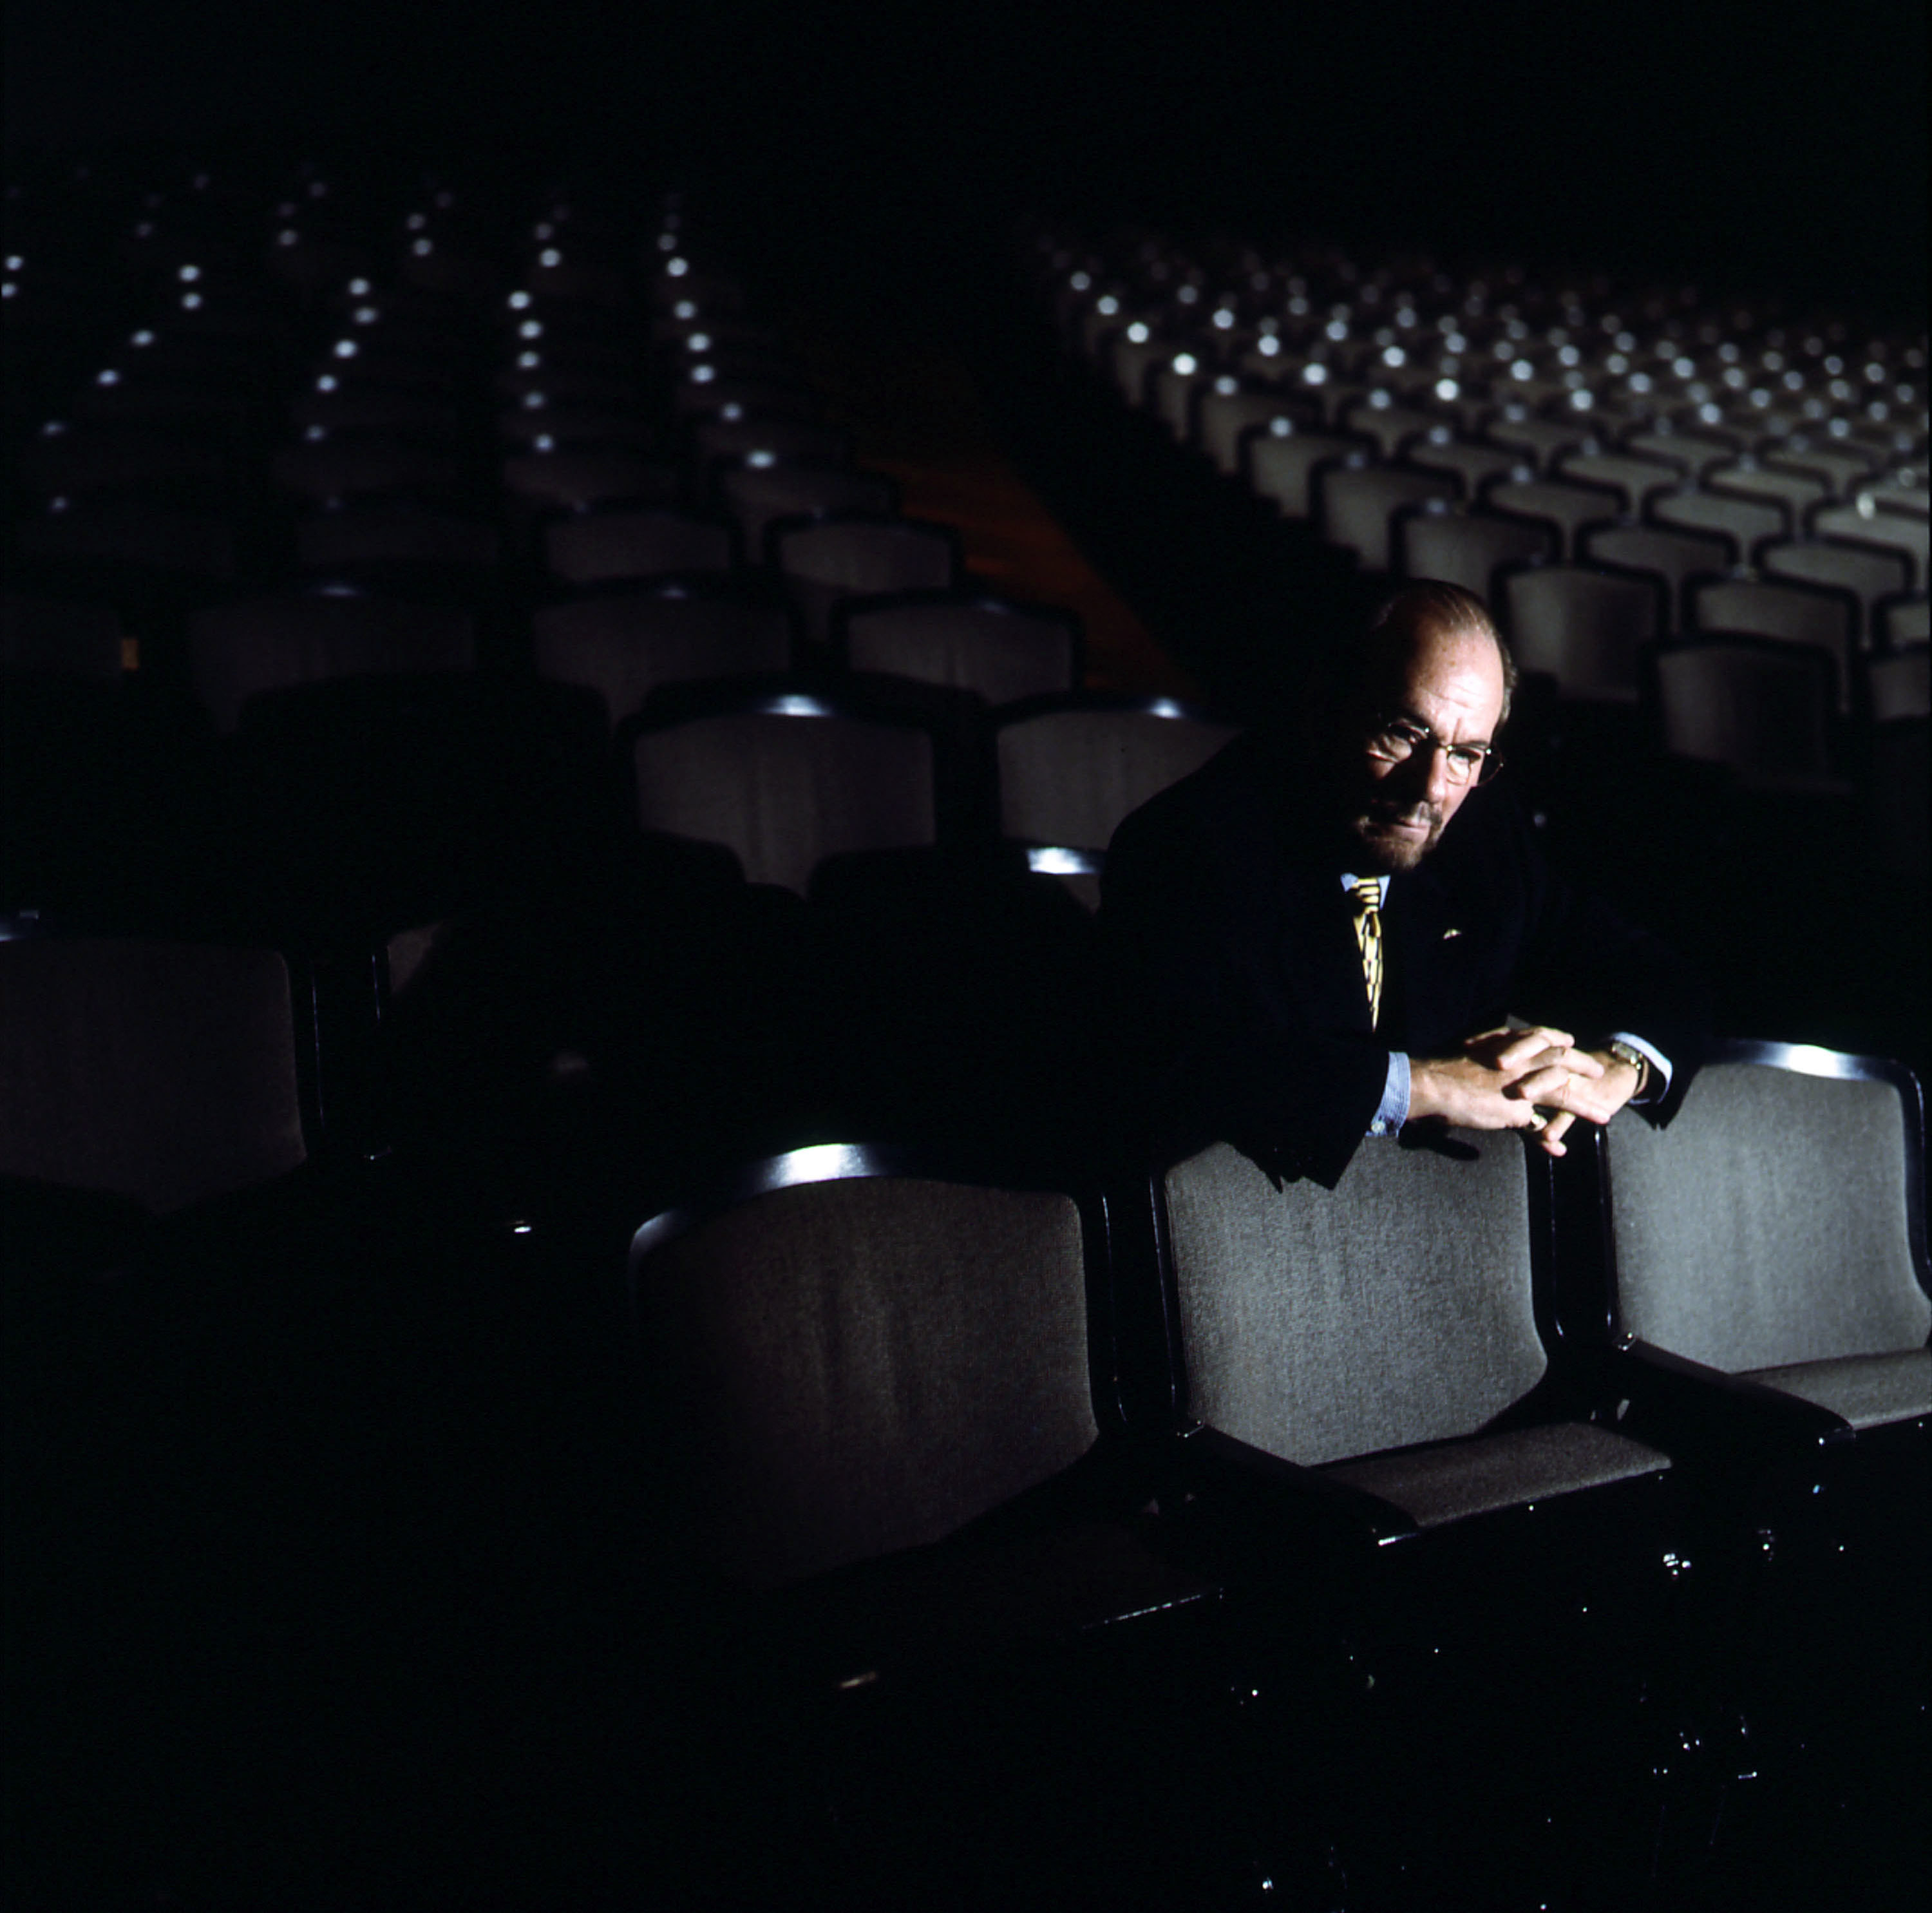 Lipton alone among many empty seats in a theater